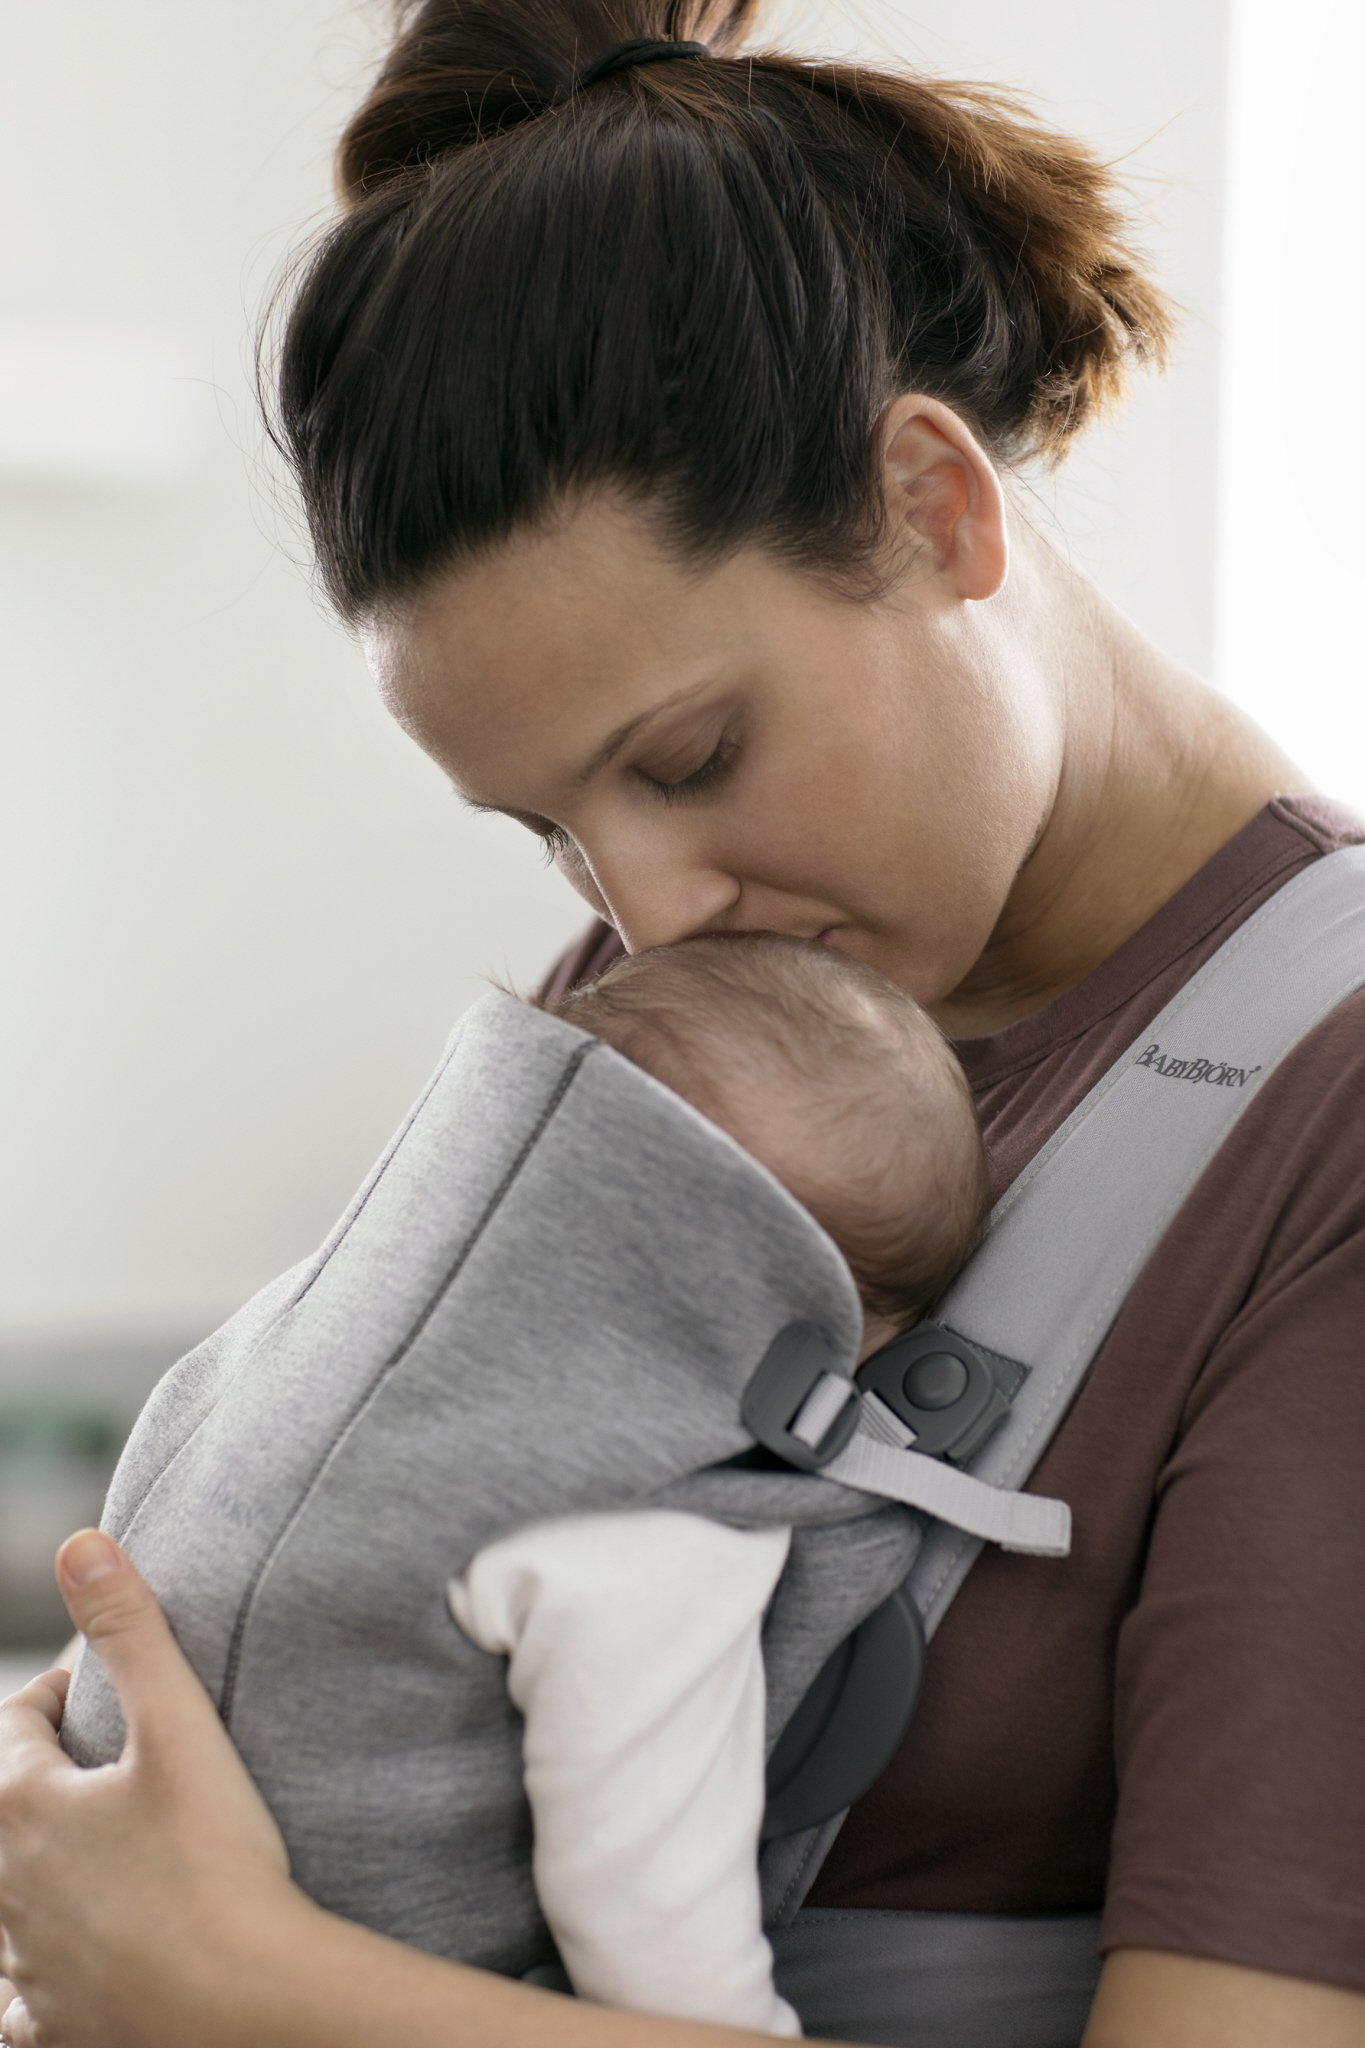 BABYBJORN Baby Carrier Mini in 3D Jersey, Light Grey by BabyBjörn (Image #5)